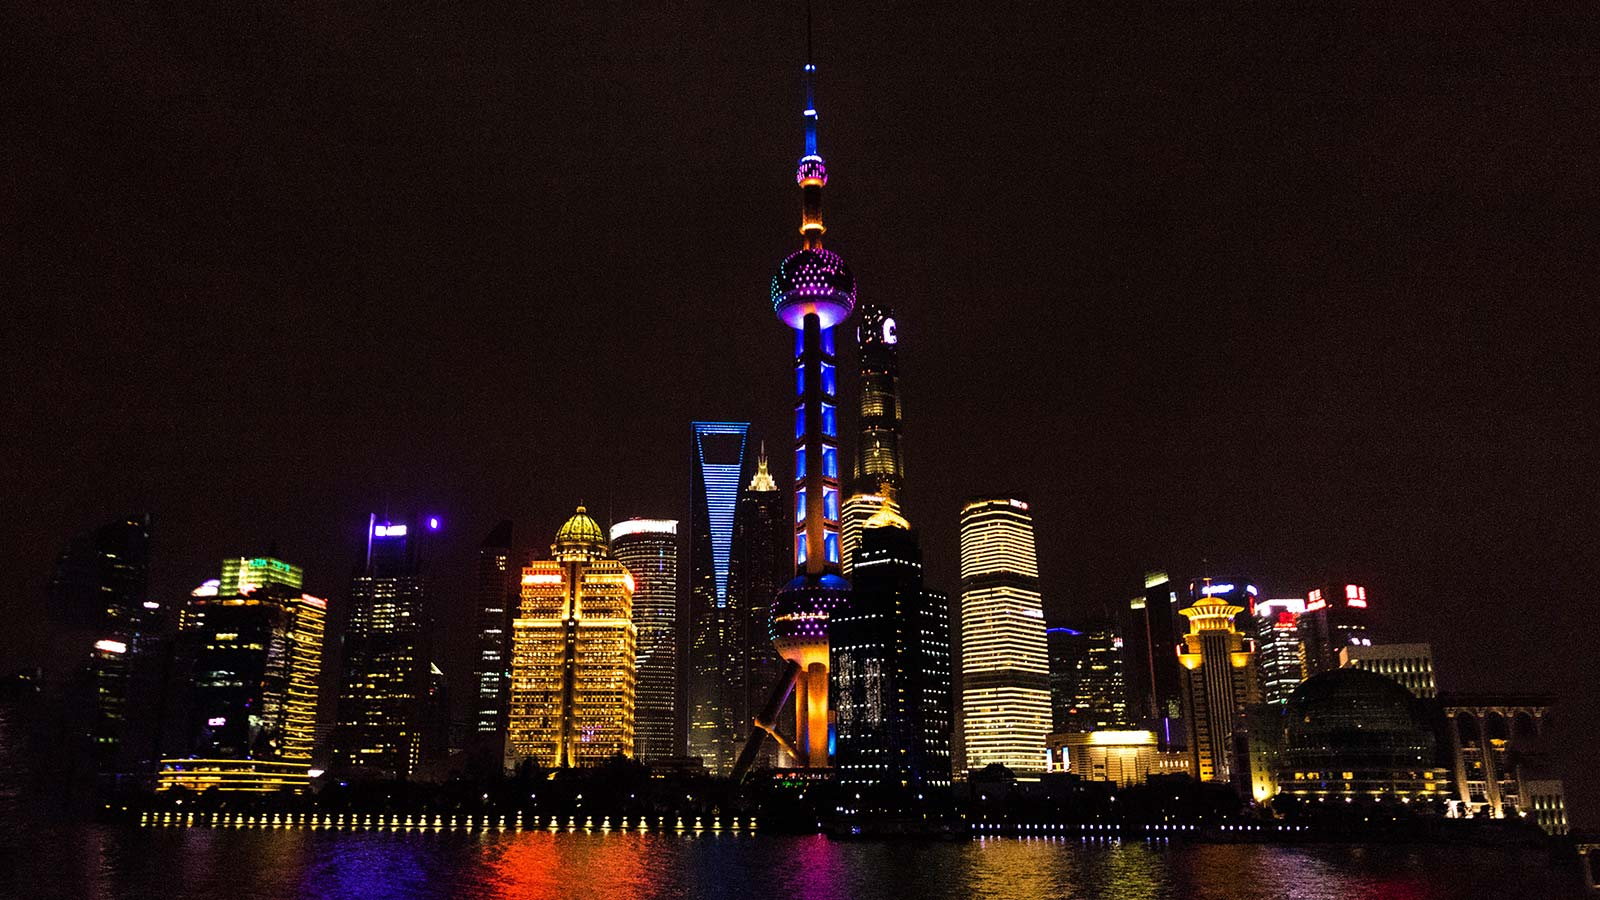 The dramatic skyline of Shanghai is just one example of what makes family travel to China so incredible